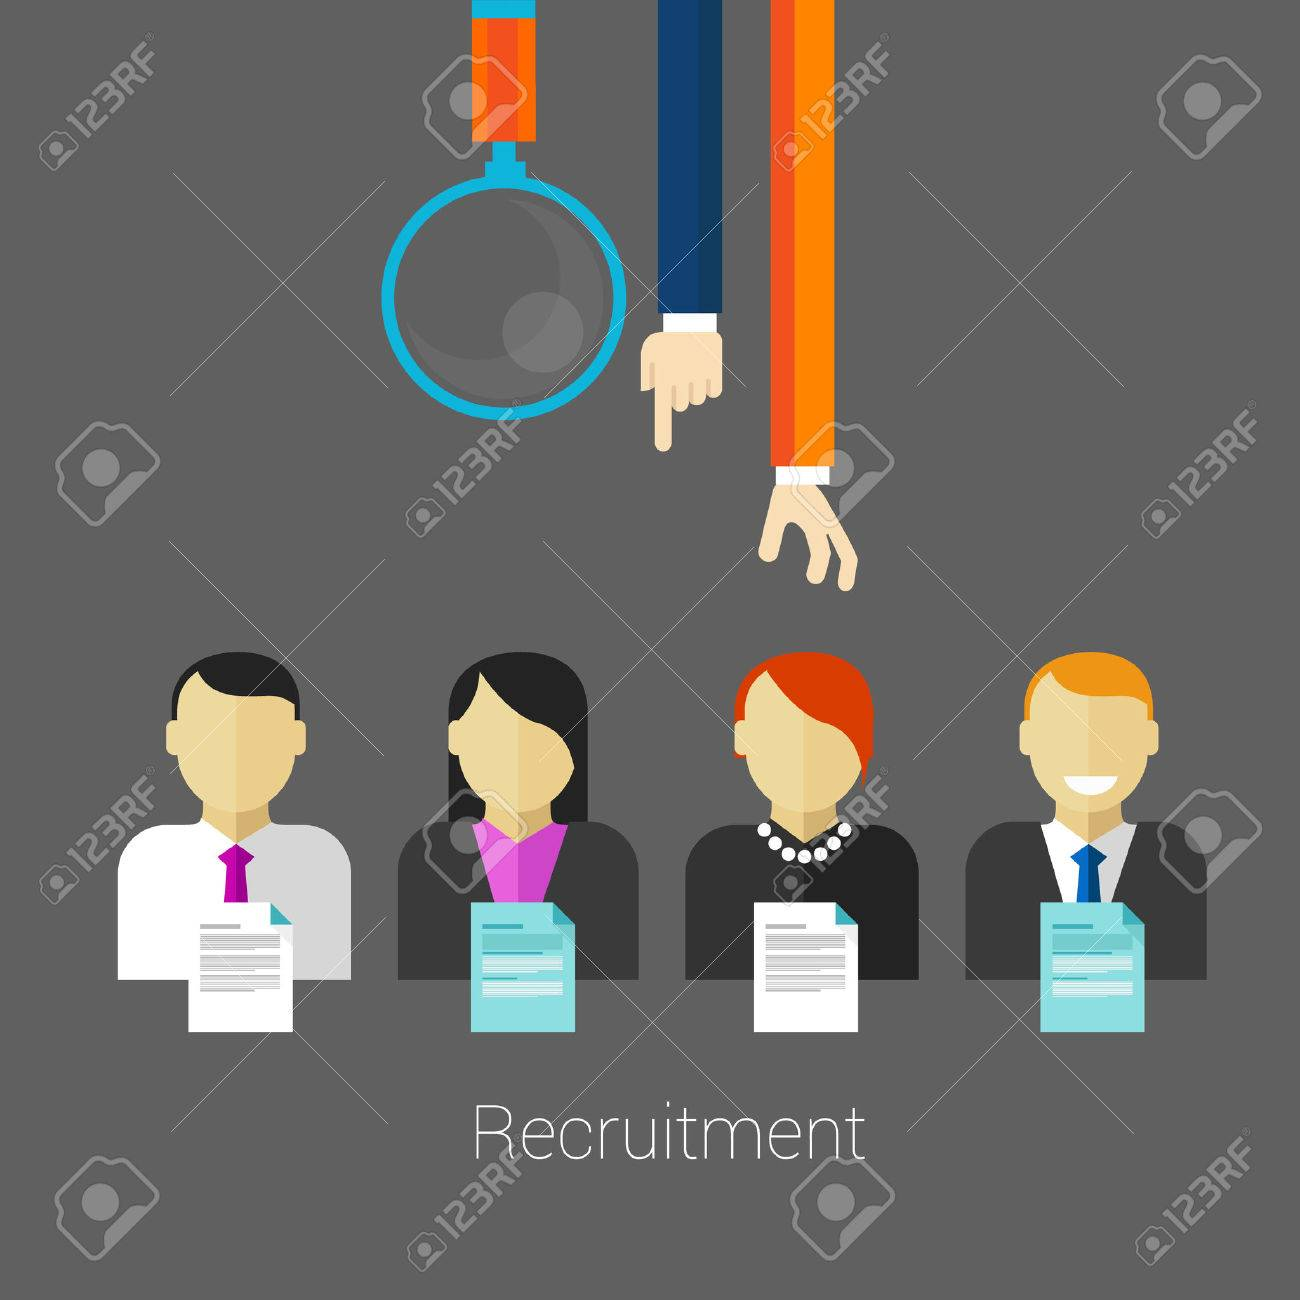 1 390 candidate selection cliparts stock vector and royalty candidate selection employee recruitment human resource selection interview analysis